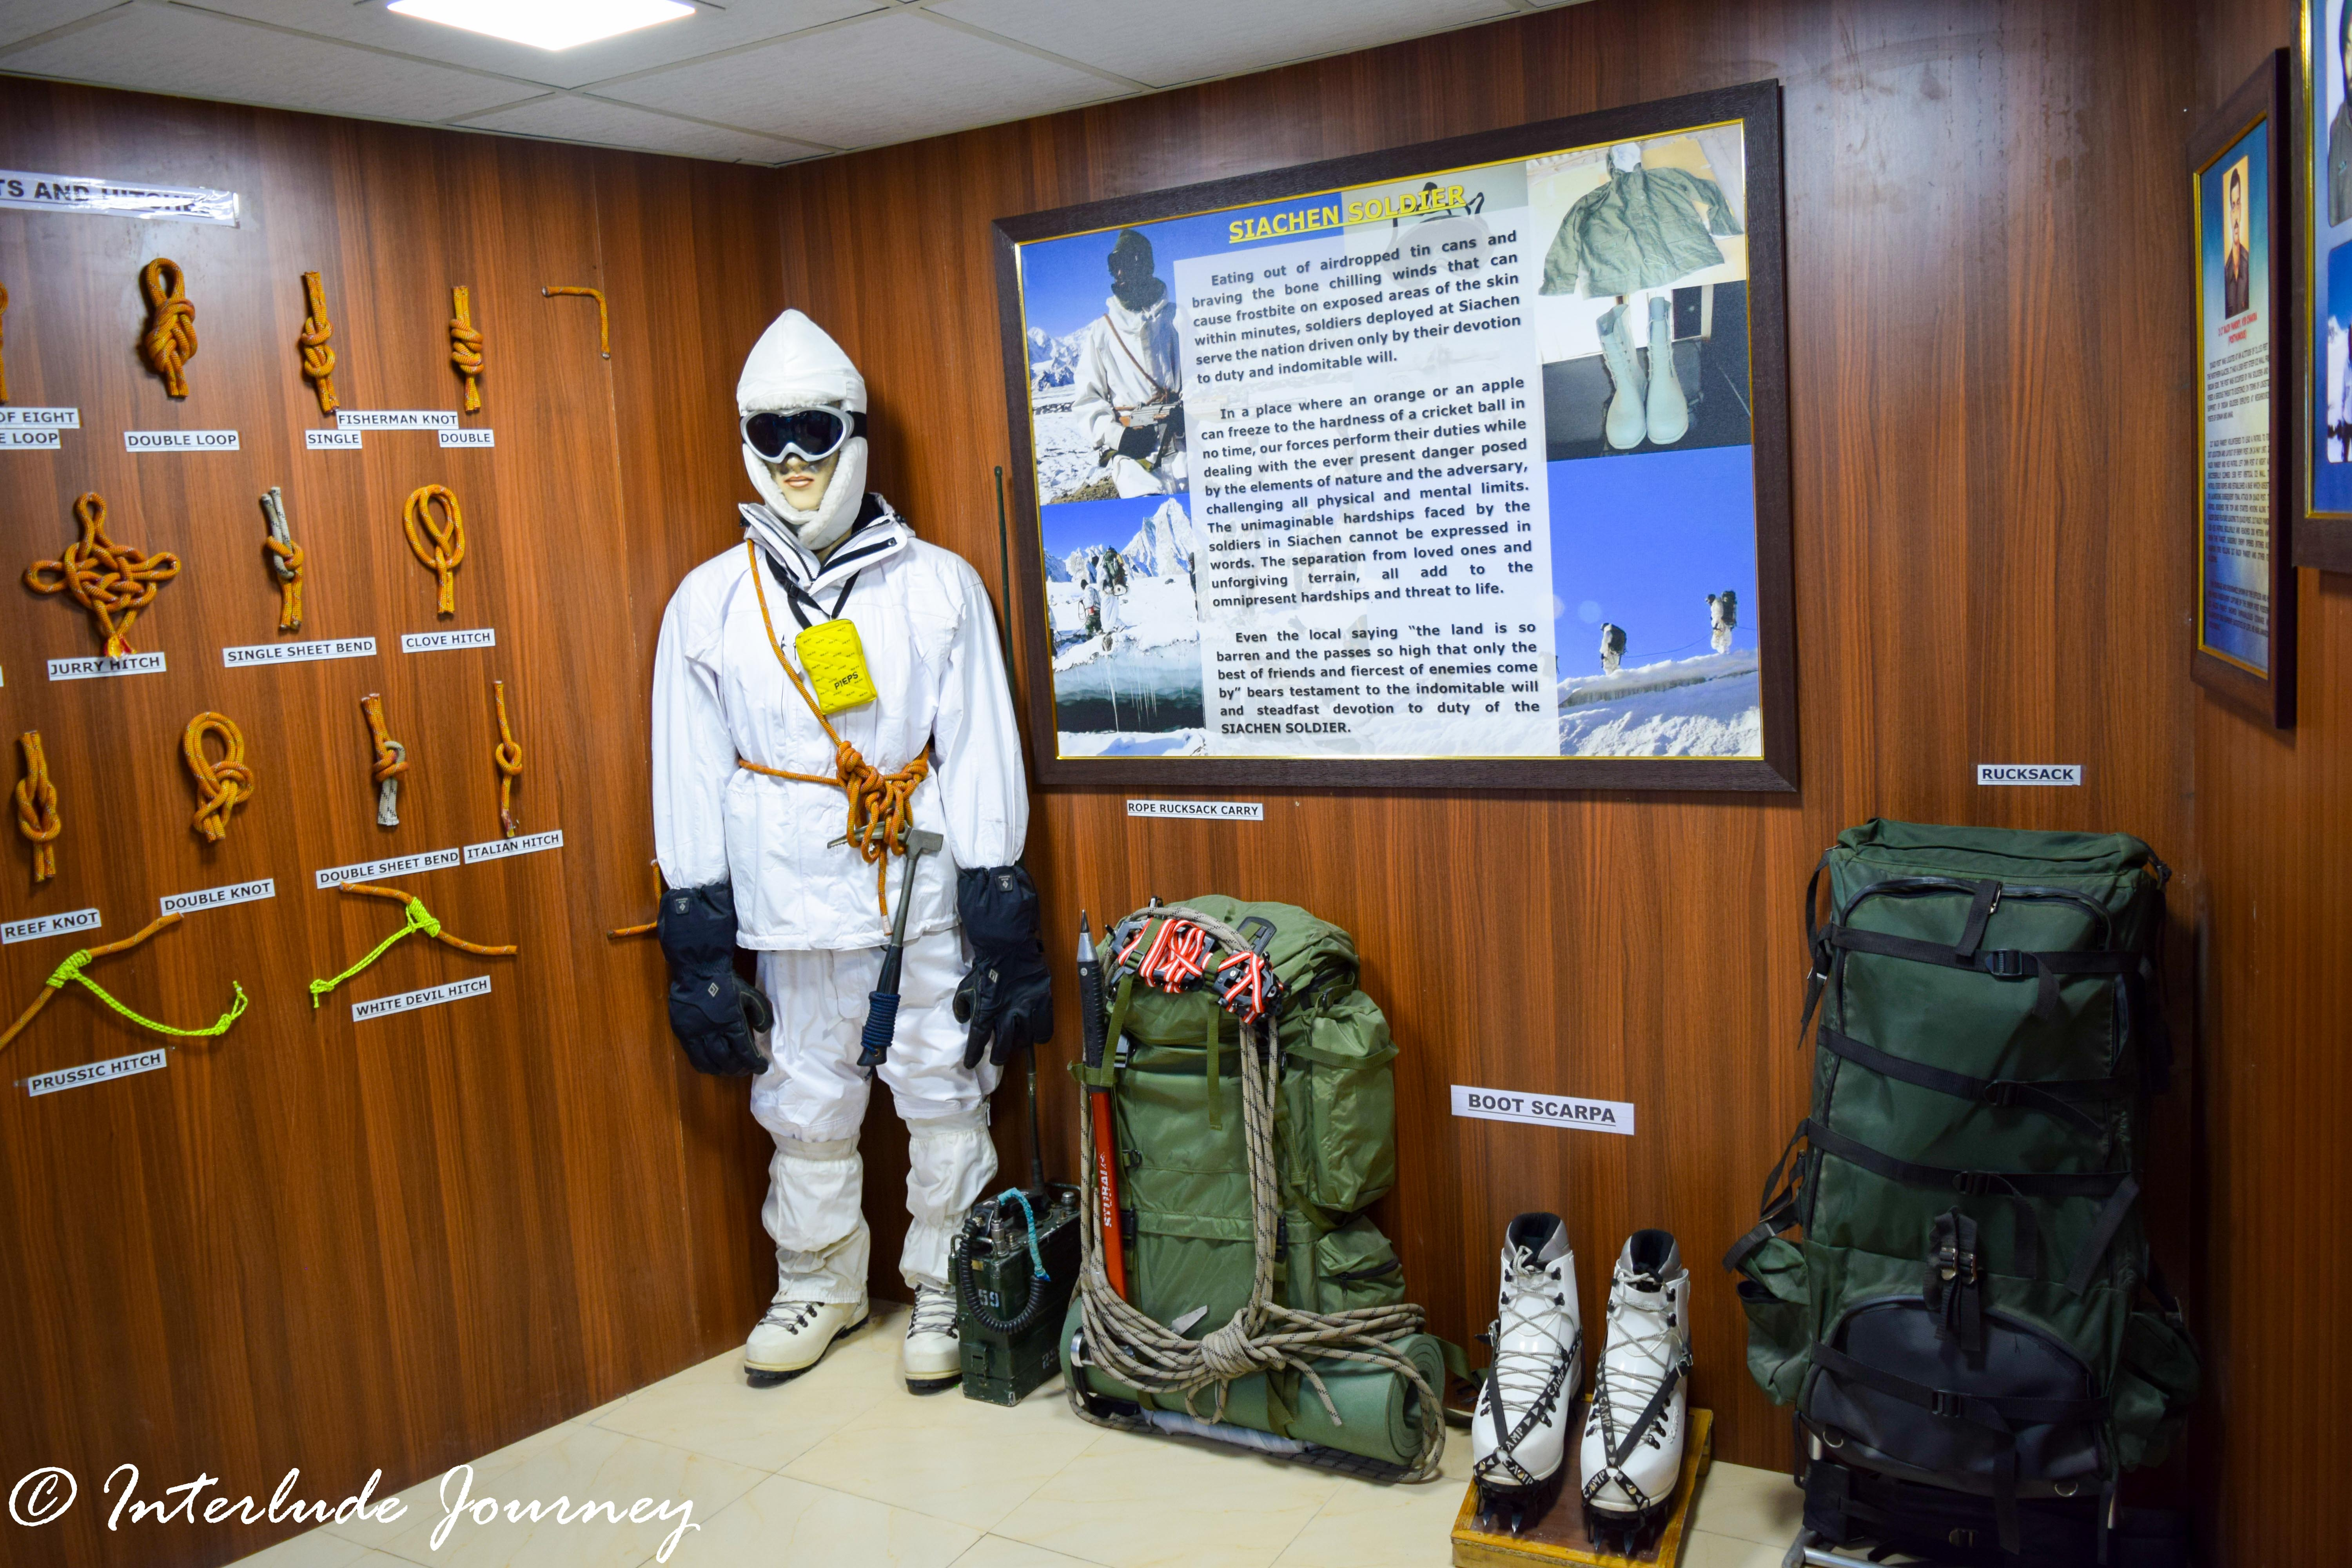 Siachen gallery in Hall of fame Museum